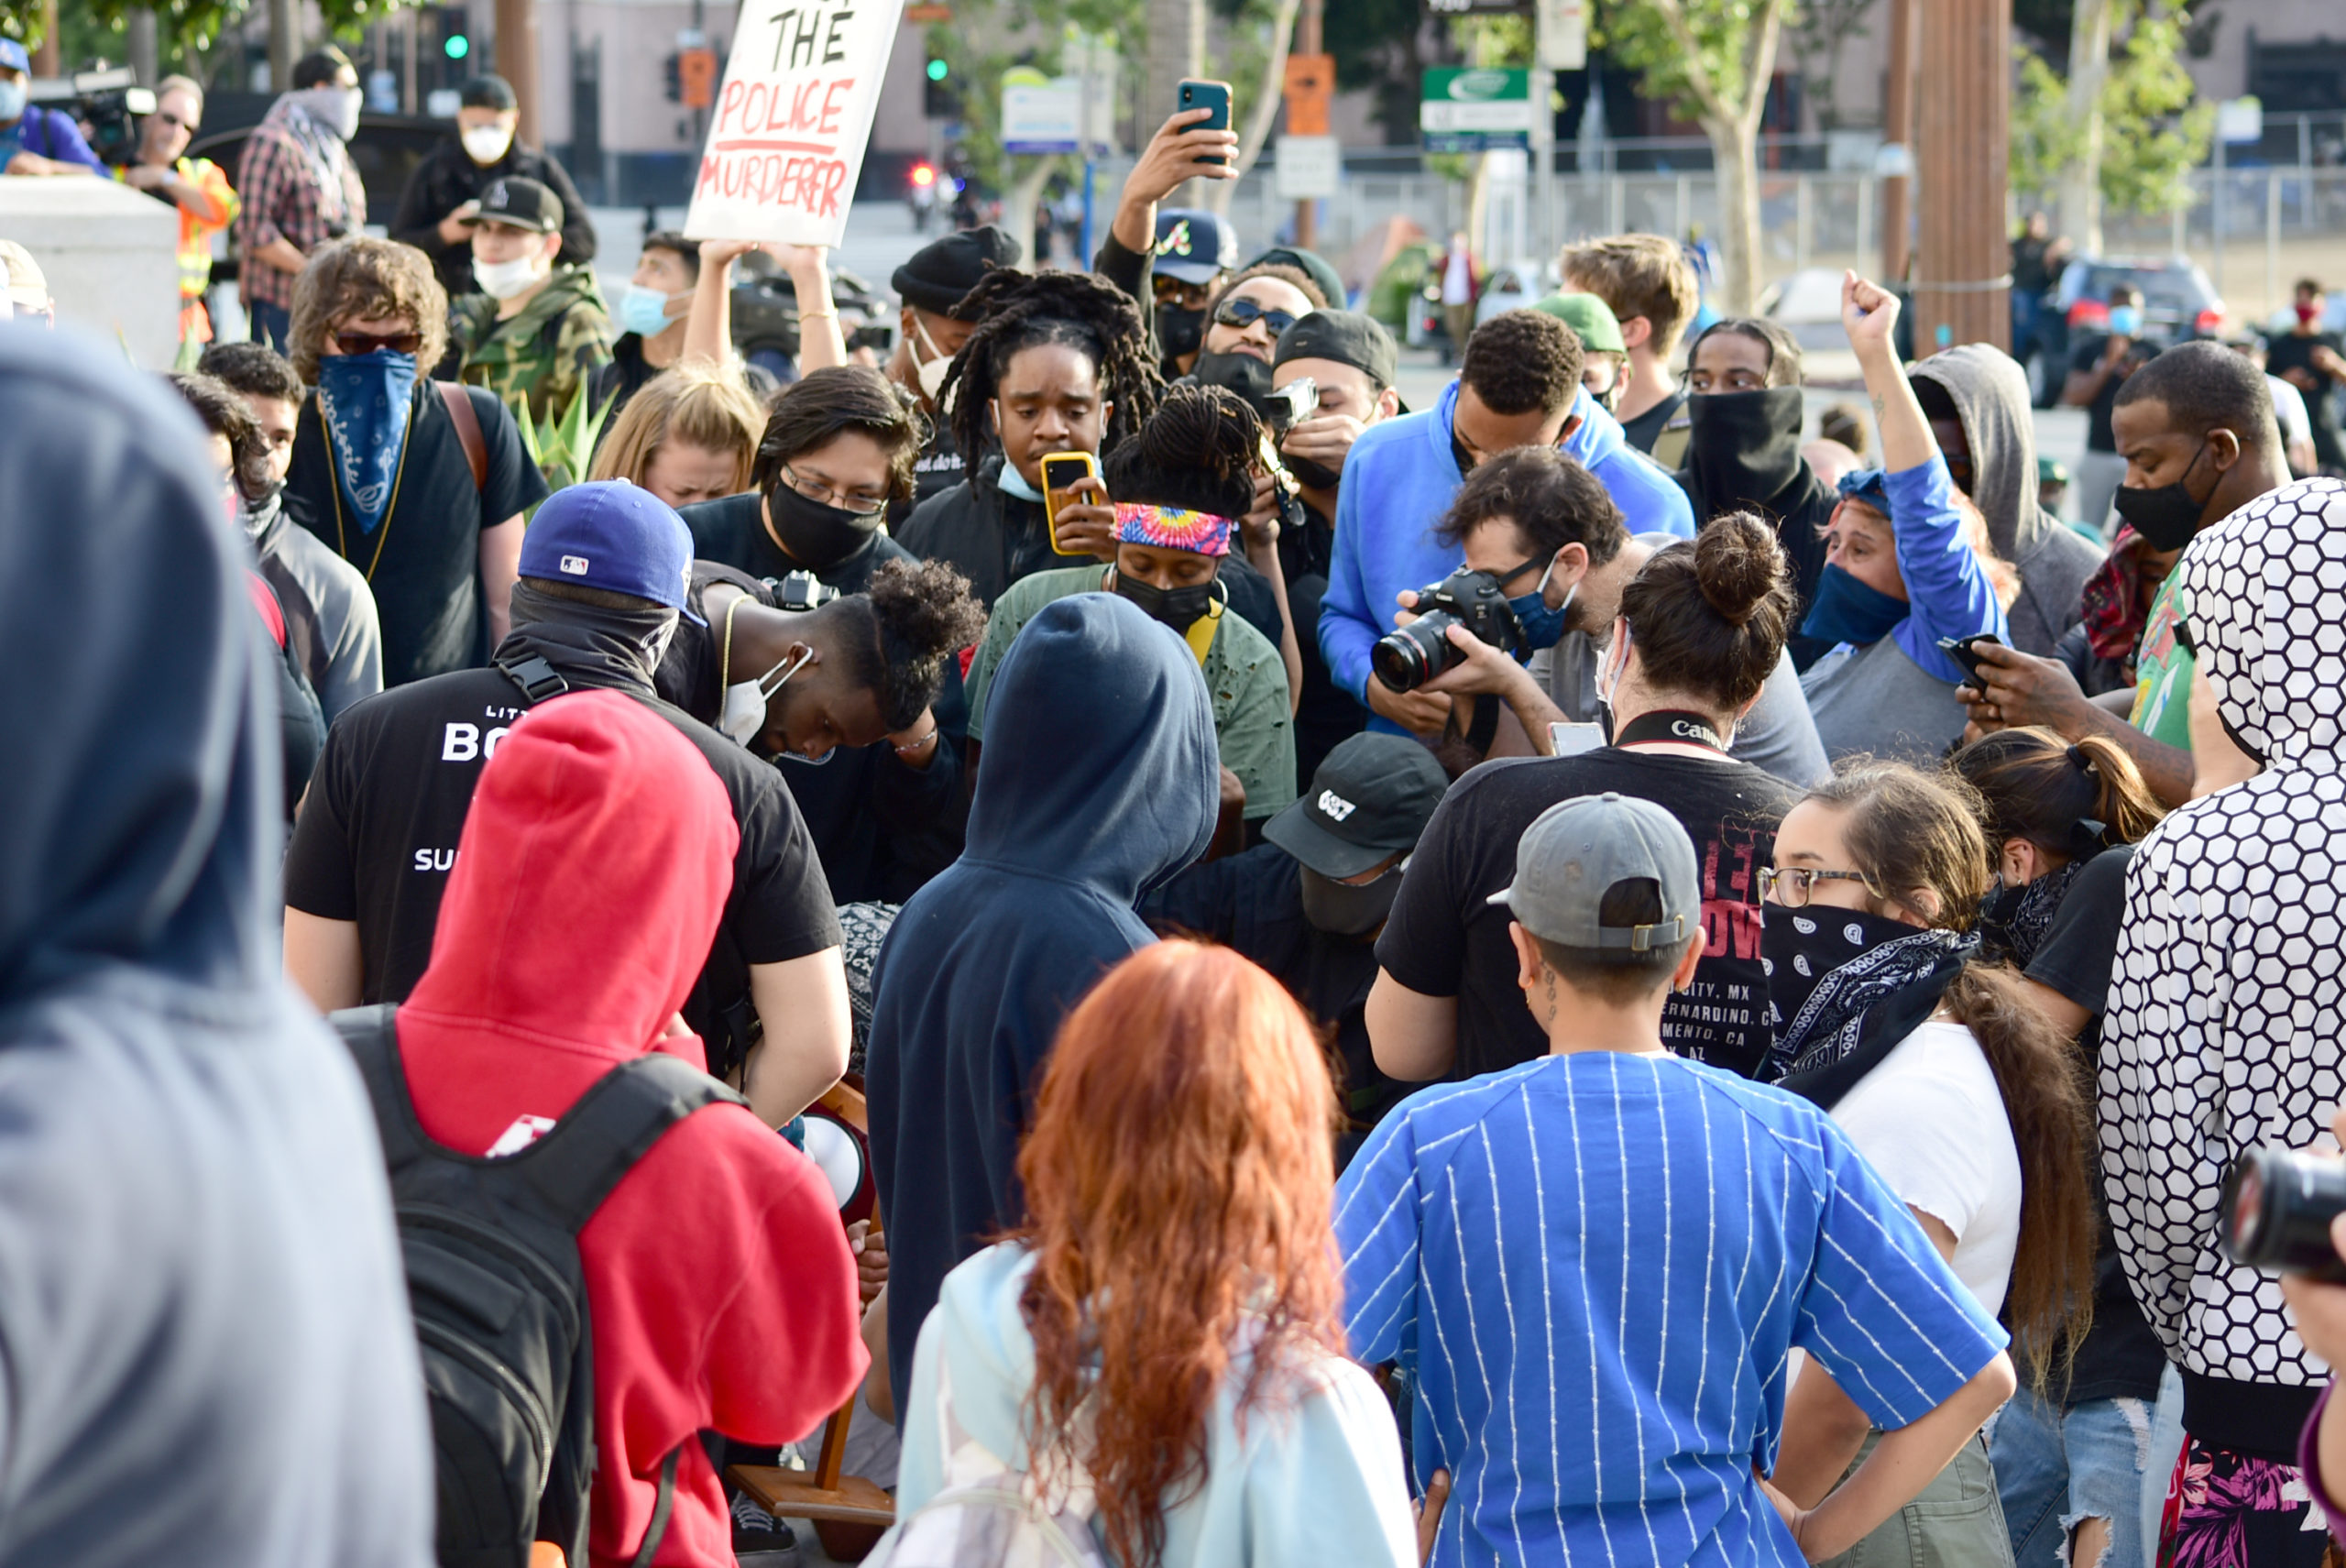 south-pasadena-news-05-31-2020-george-floyd-blm-black-lives-matter-protests-los-angeles-day-2-106